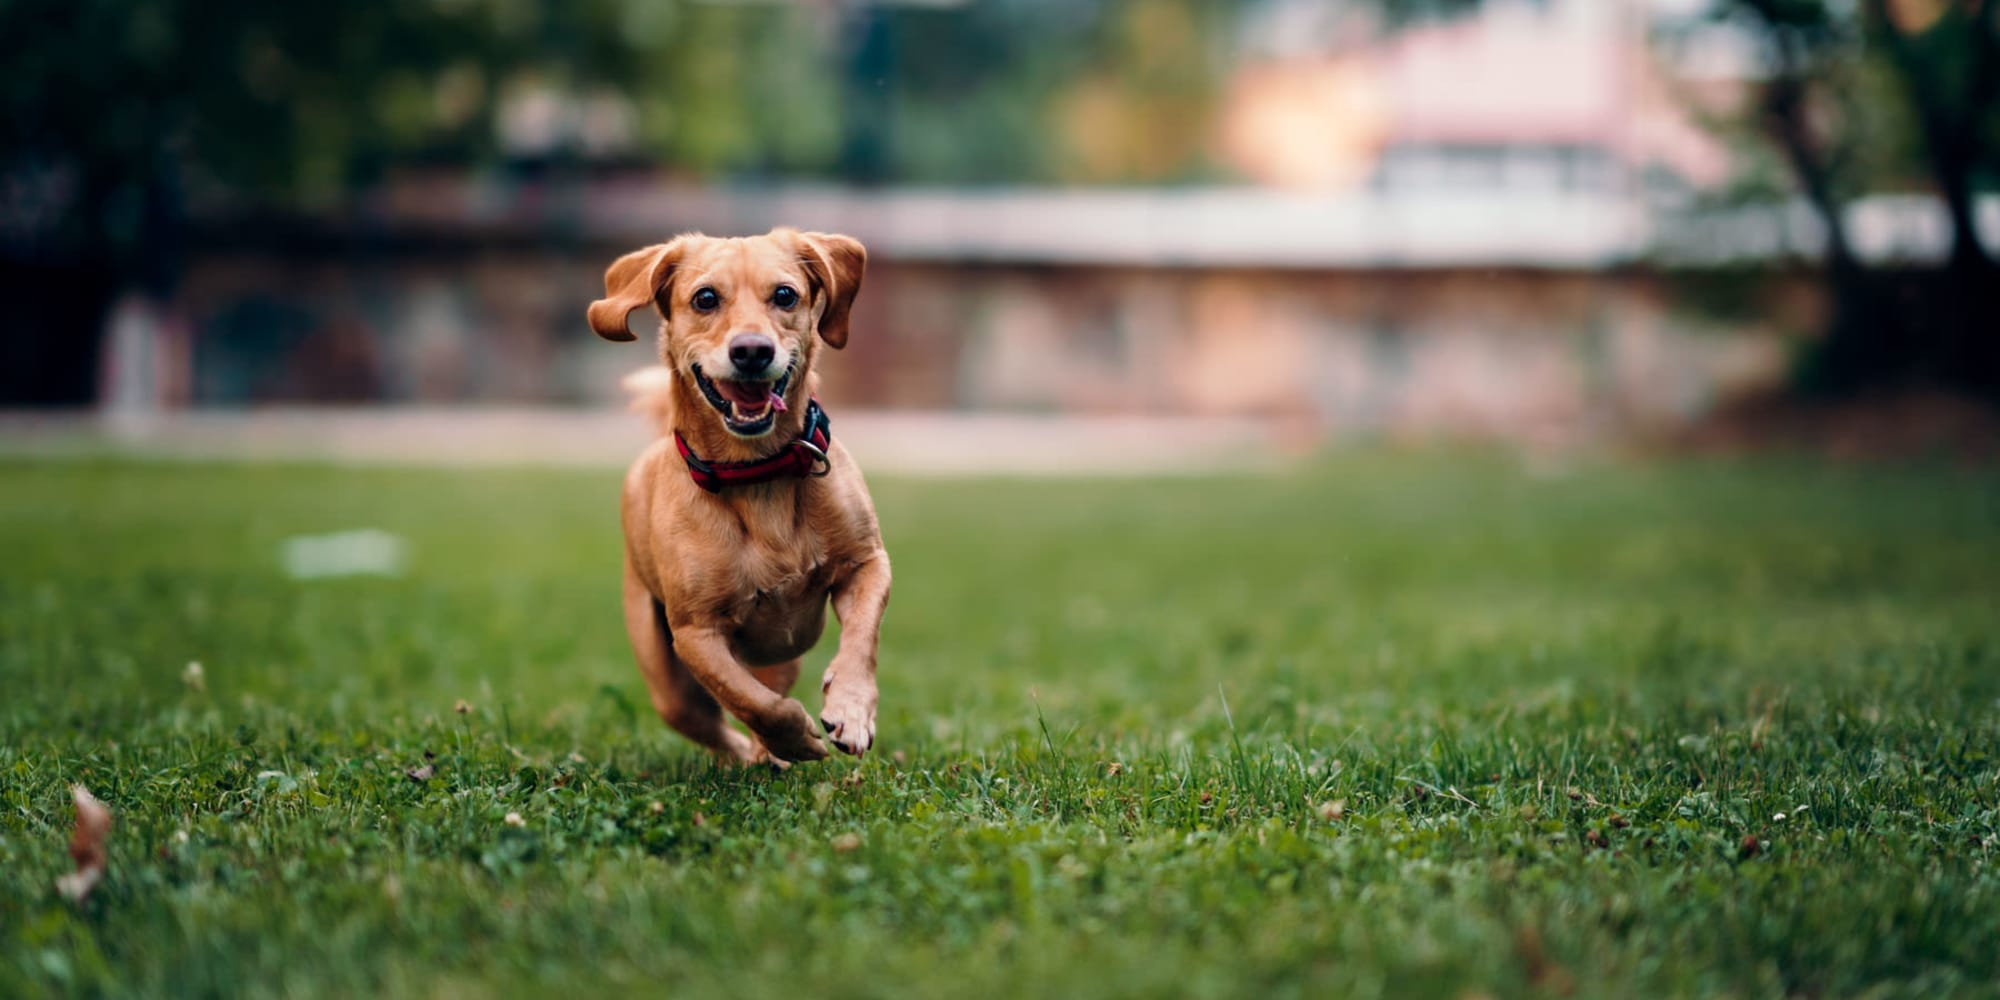 Happy dog running on the green grass outside at Parkwood in Lancaster, California